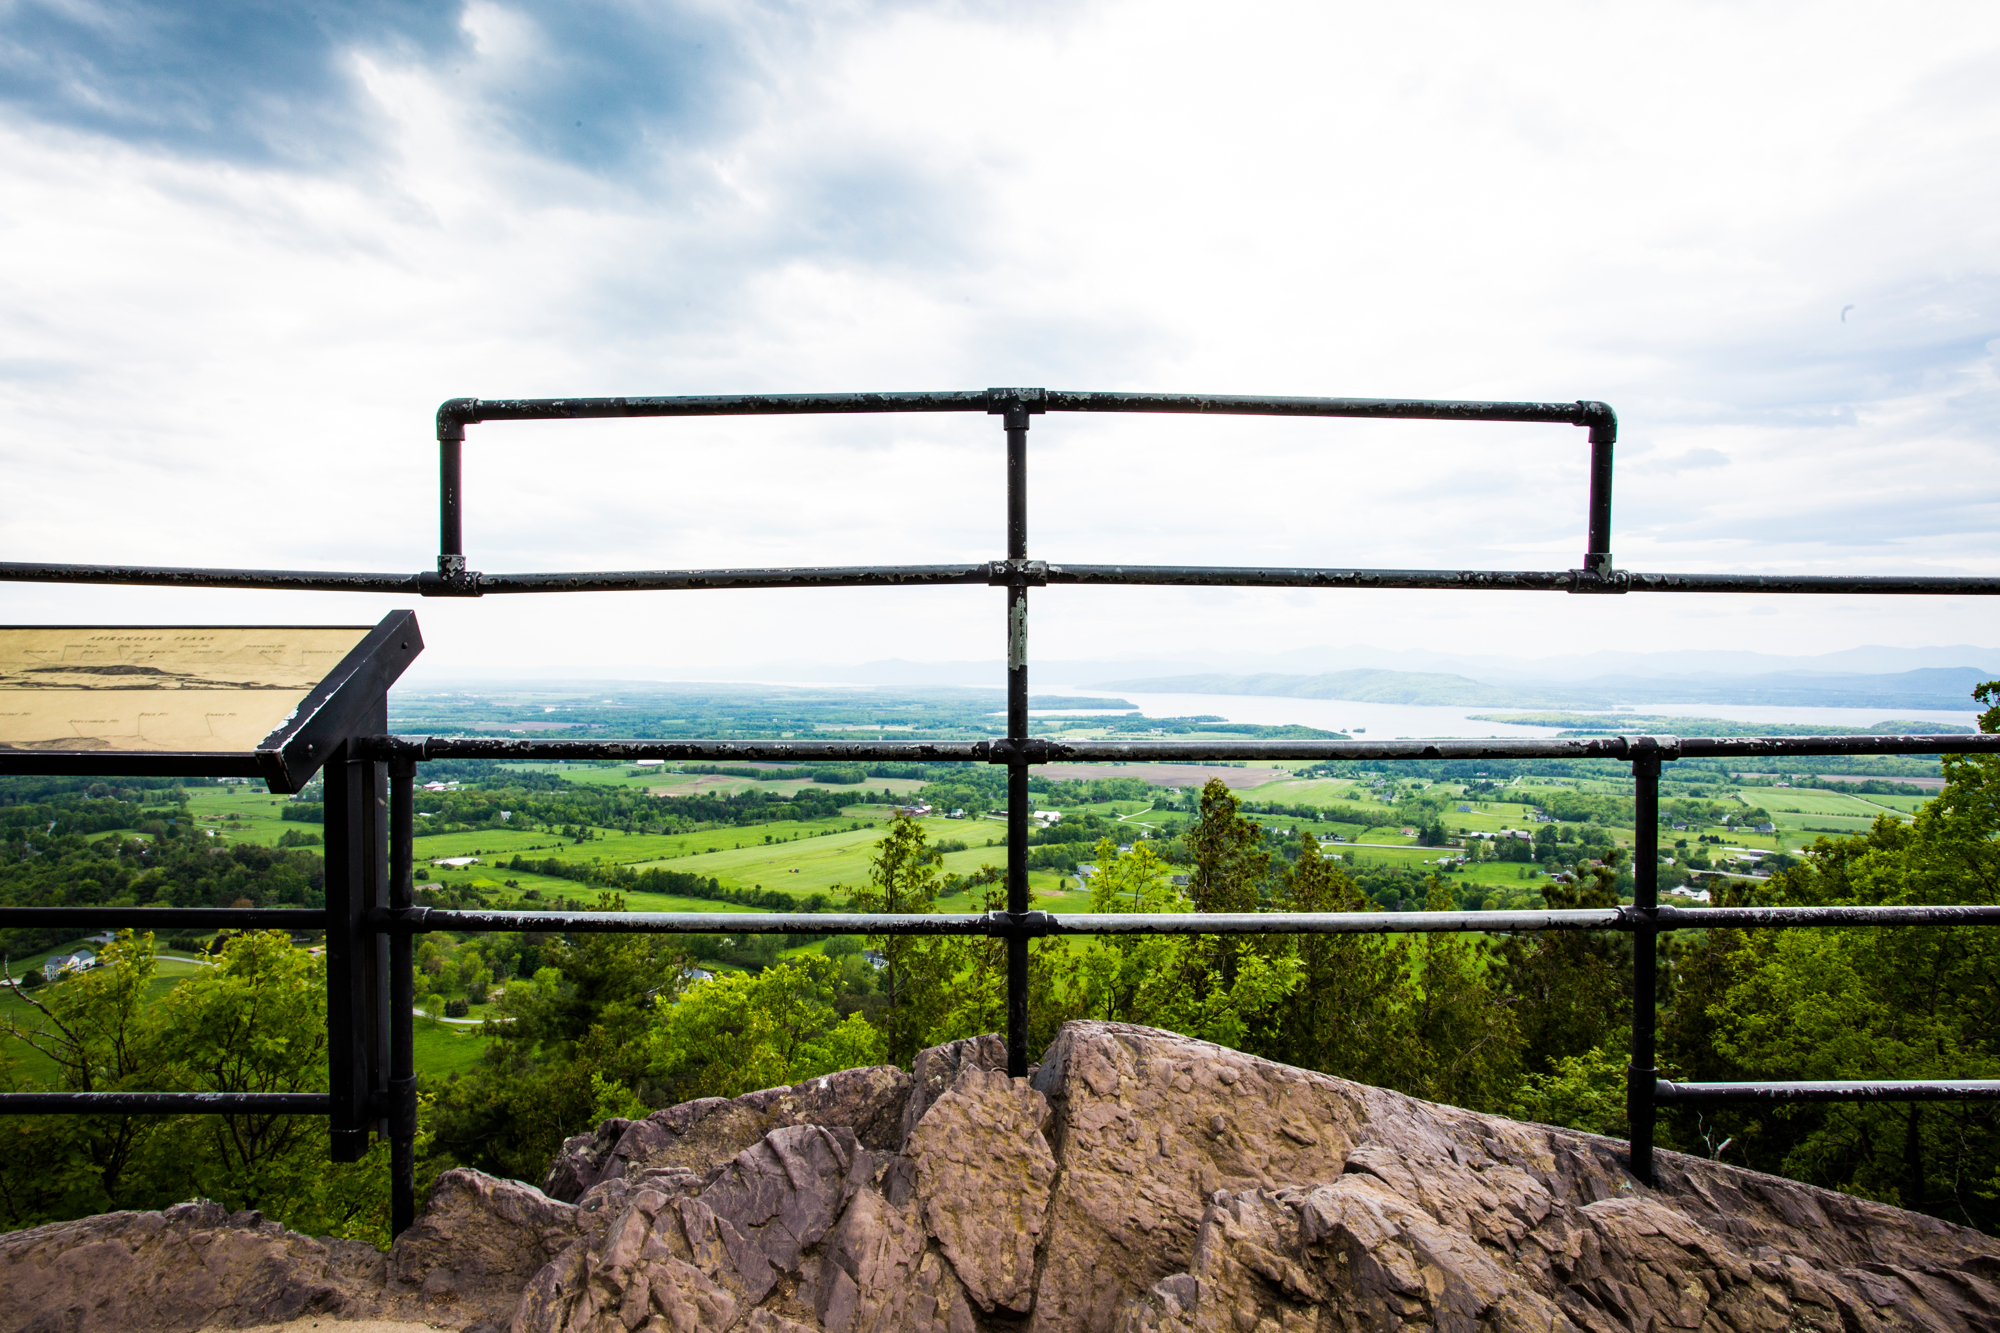 Discount passes to Vermont State Parks